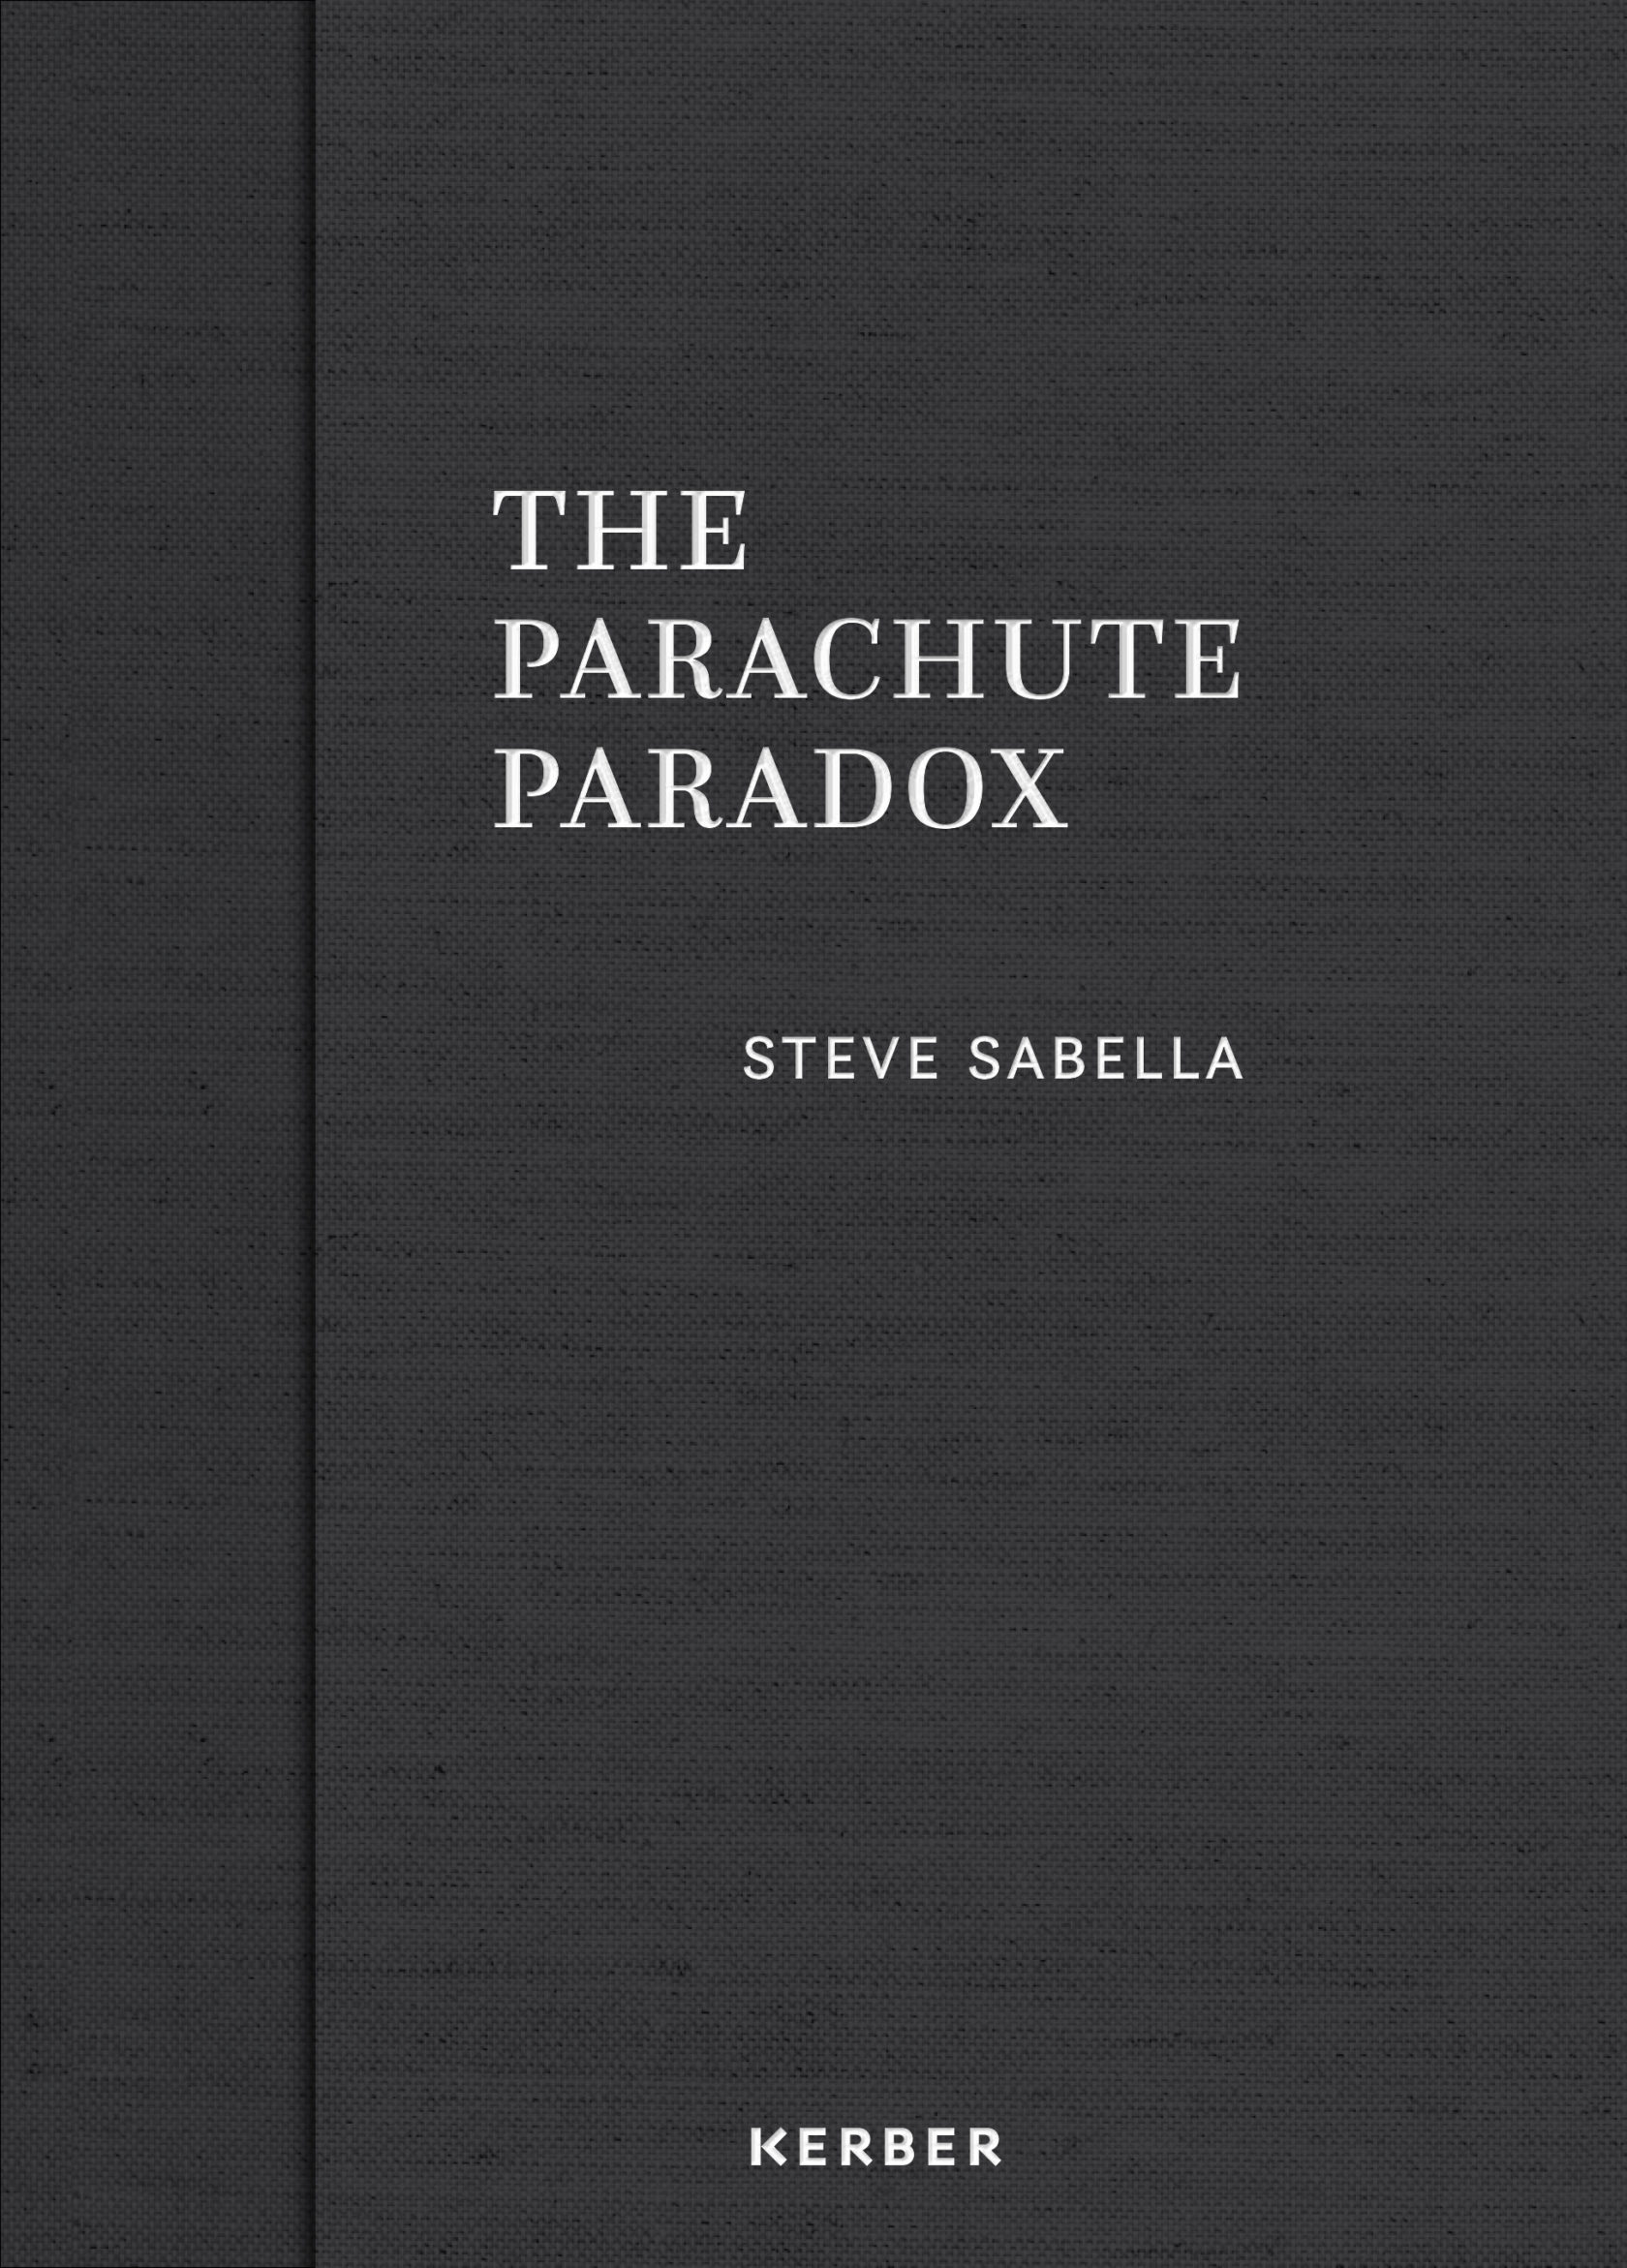 the-parachute-paradox-image-8a